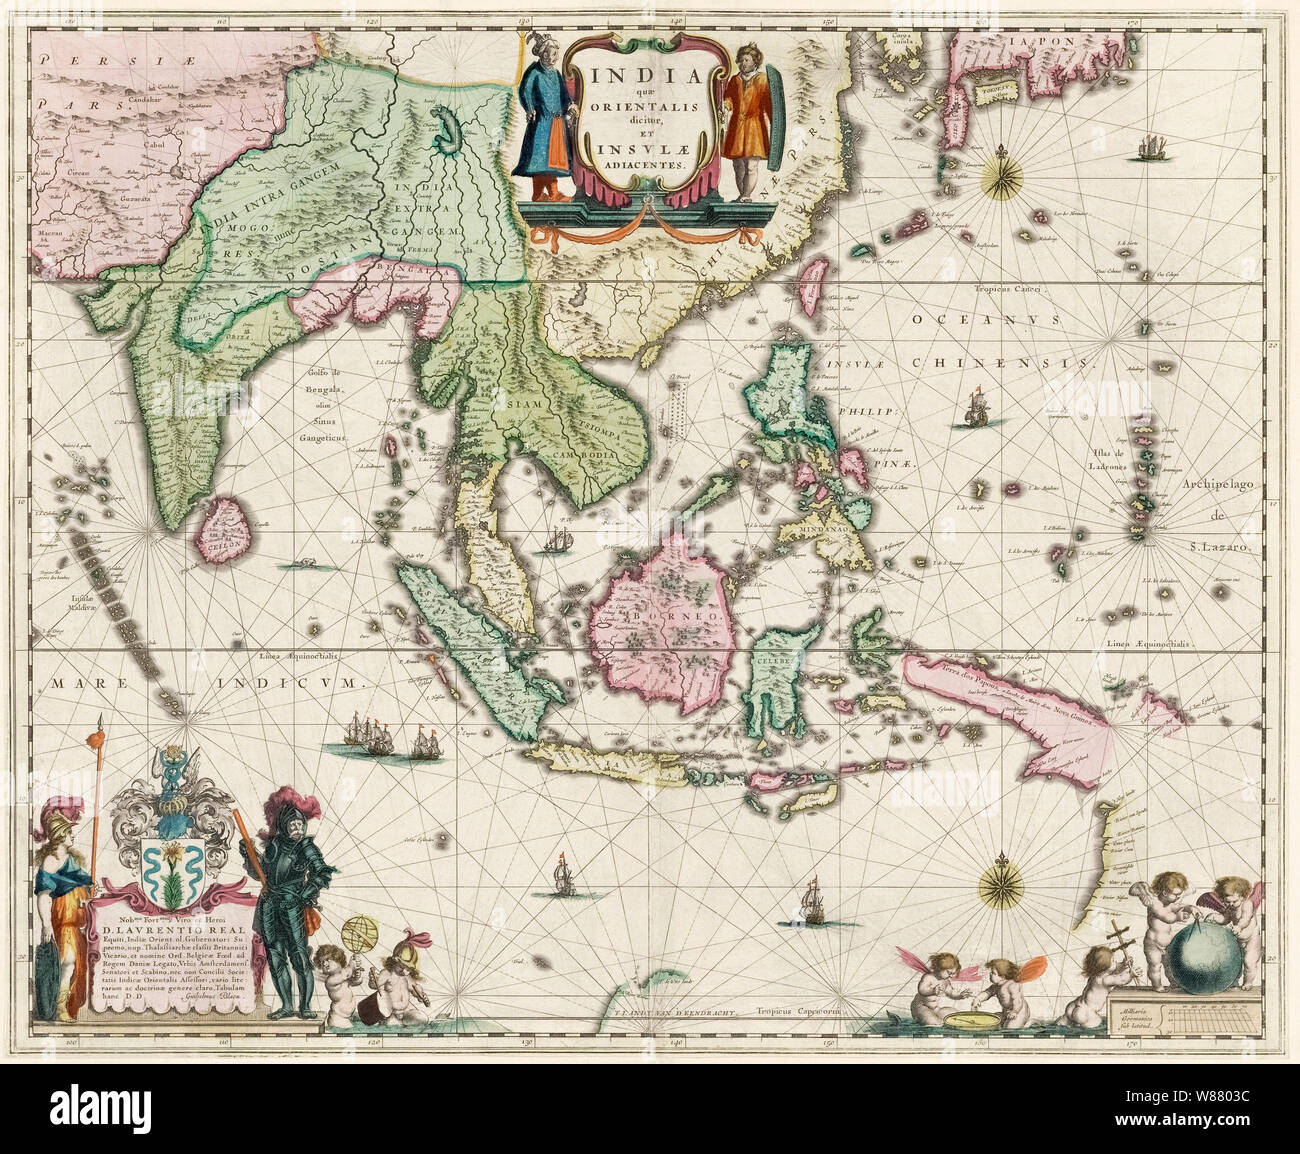 Old Map Of Indonesia Stock Photos & Old Map Of Indonesia ... Indonesia On Map Of India on map of india bodies of water, map of india indus river, map of india world, map of india south asia, map of india himalayas, map of india krishna river, map of india arabian sea, map of india central asia, map of india mount everest, map of india ganges river, map of india by regions, map of india islands, map of india equator, map of india geography, map of india hindu kush, map of india religion, map of india bahrain, map of pakistan, flag indonesia, map of india country,